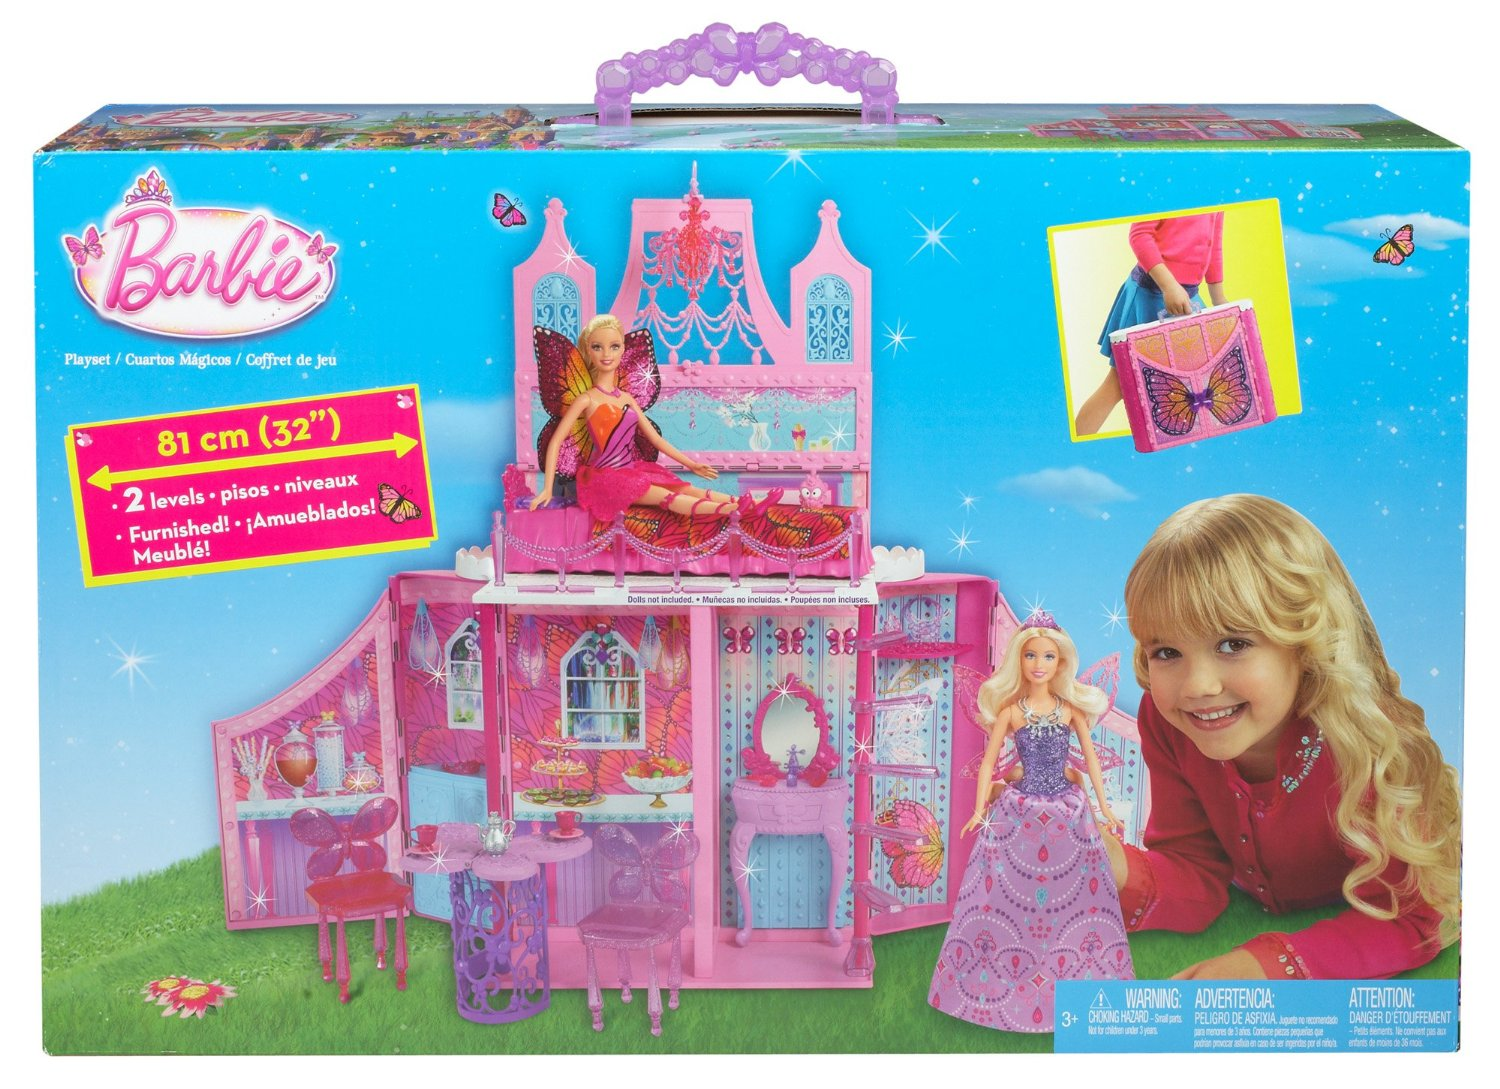 filebarbie mariposa the fairy princess castle playset boxedjpg